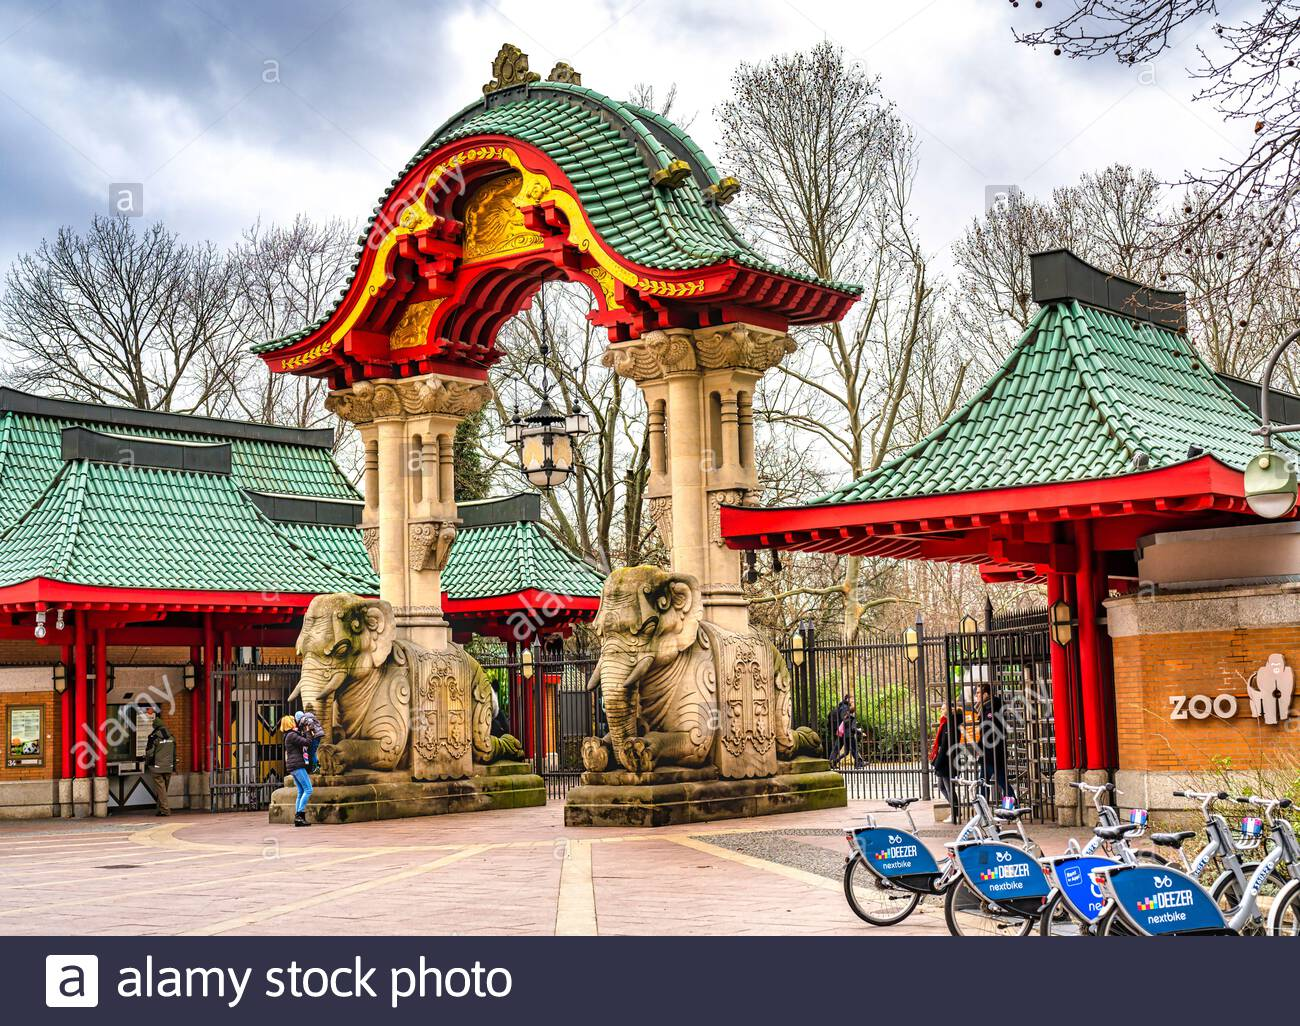 berlin germany february 21 2020 view to the famous elephant gate of the berlin zoological garden with its stone sculptures and the asian looking 2B11G22